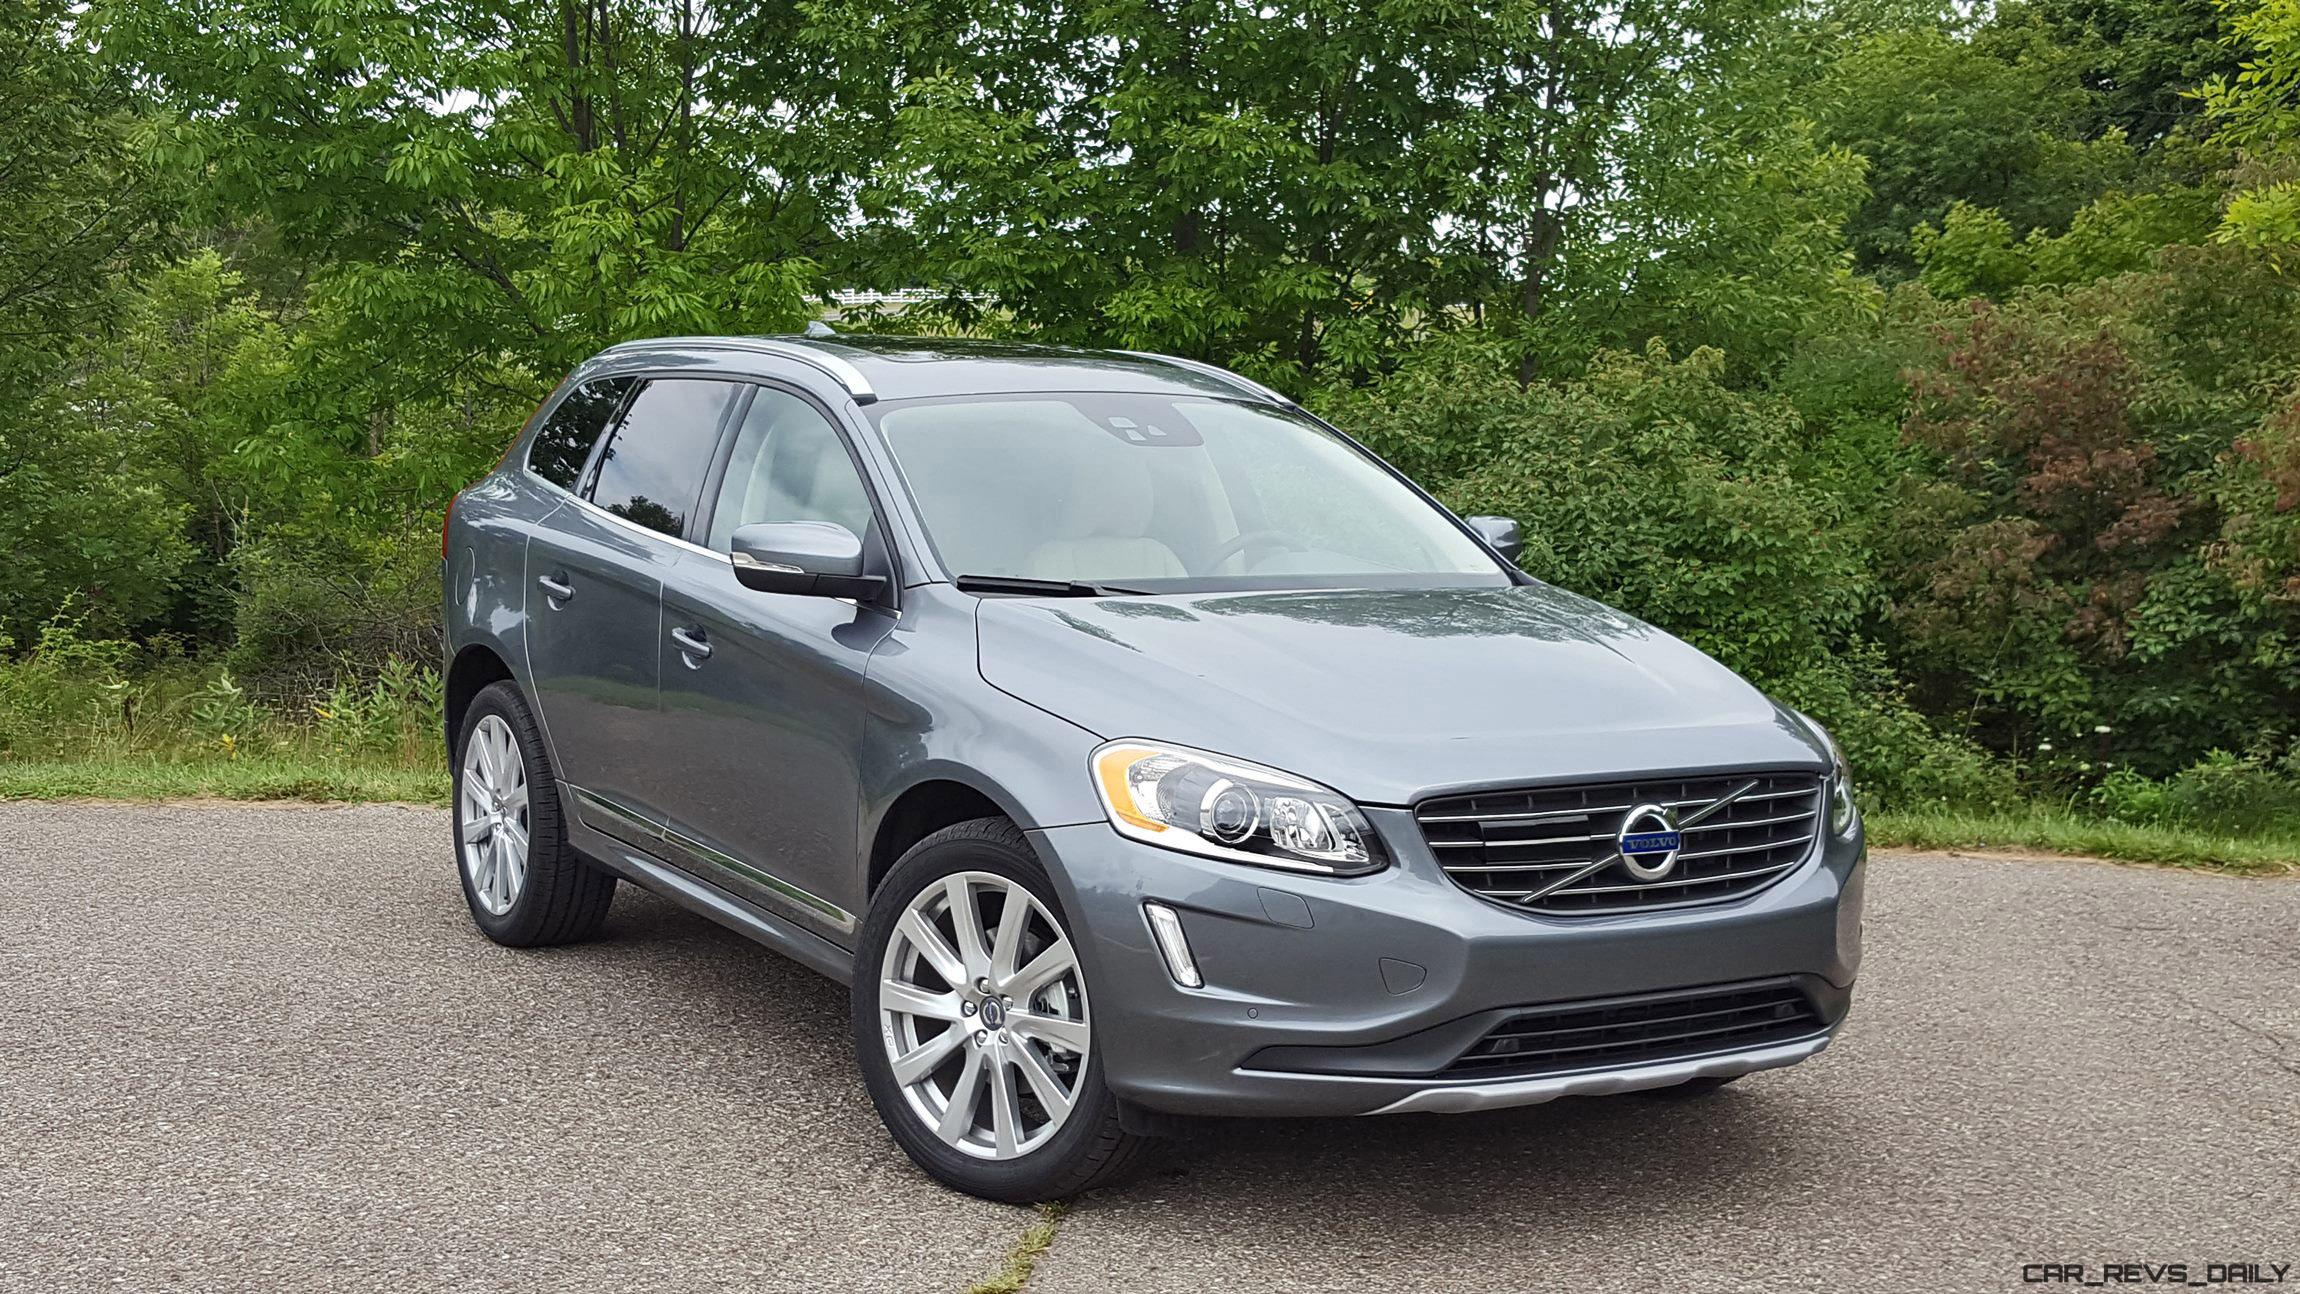 2017 volvo xc60 t6 inscription road test review by carl malek. Black Bedroom Furniture Sets. Home Design Ideas